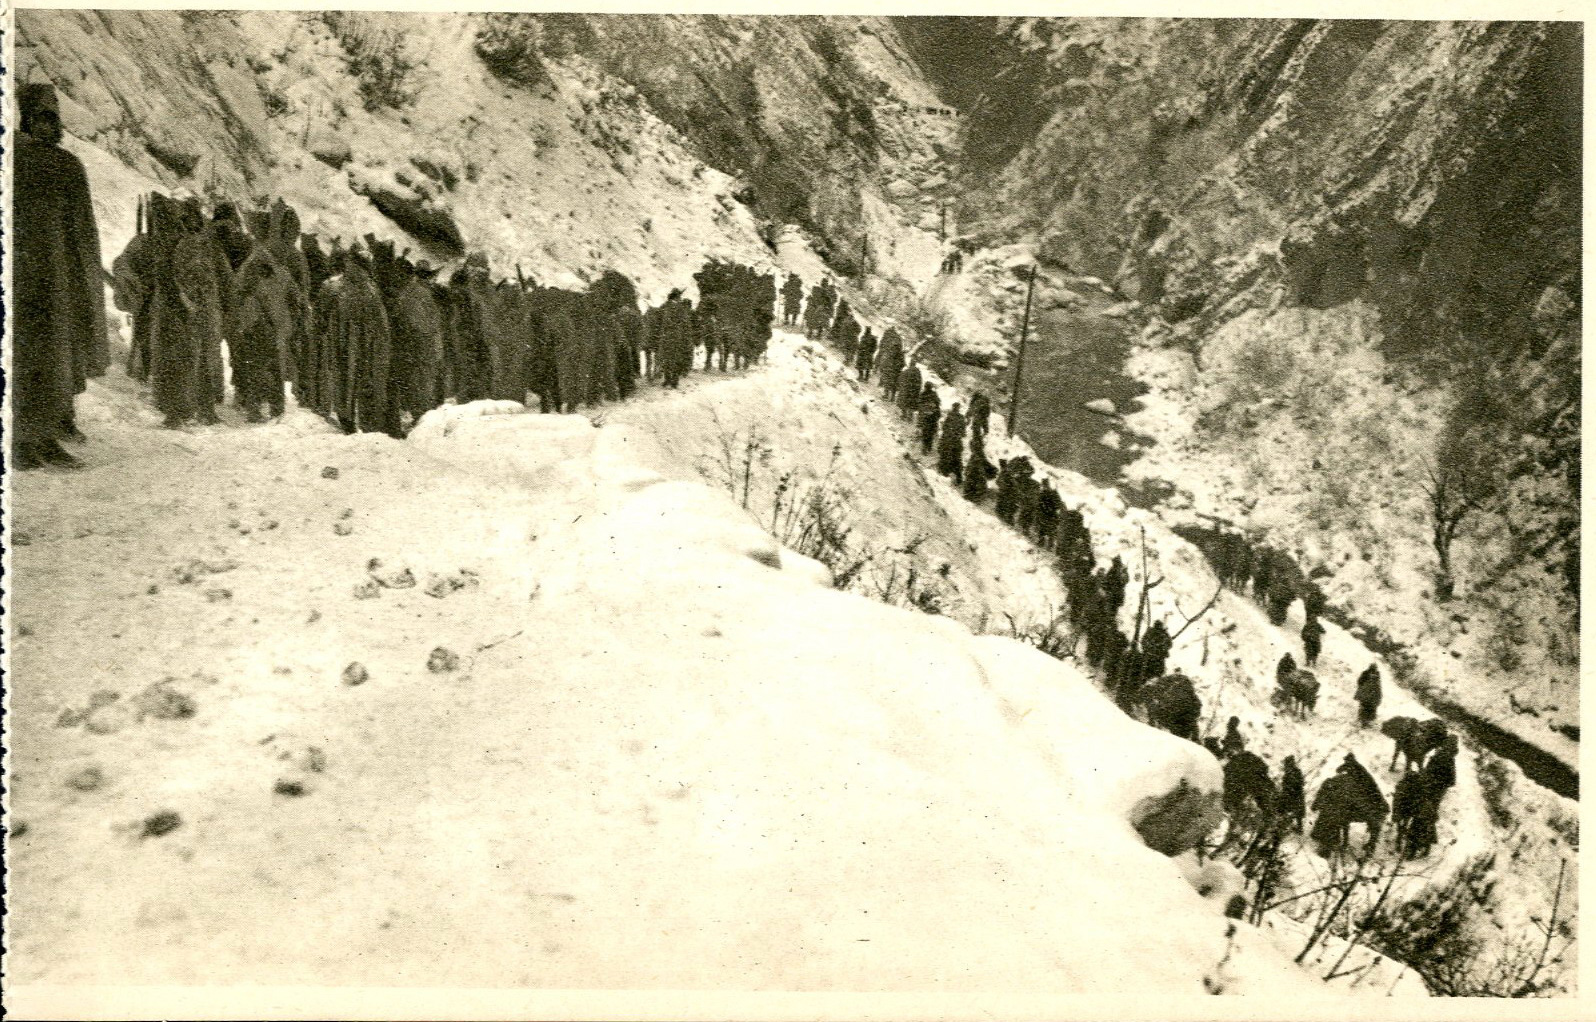 The Serbian army and civilians retreating through the harsh winter mountains of Montenegro, from Peć to Andrijevica, during the winter of 1915-16.